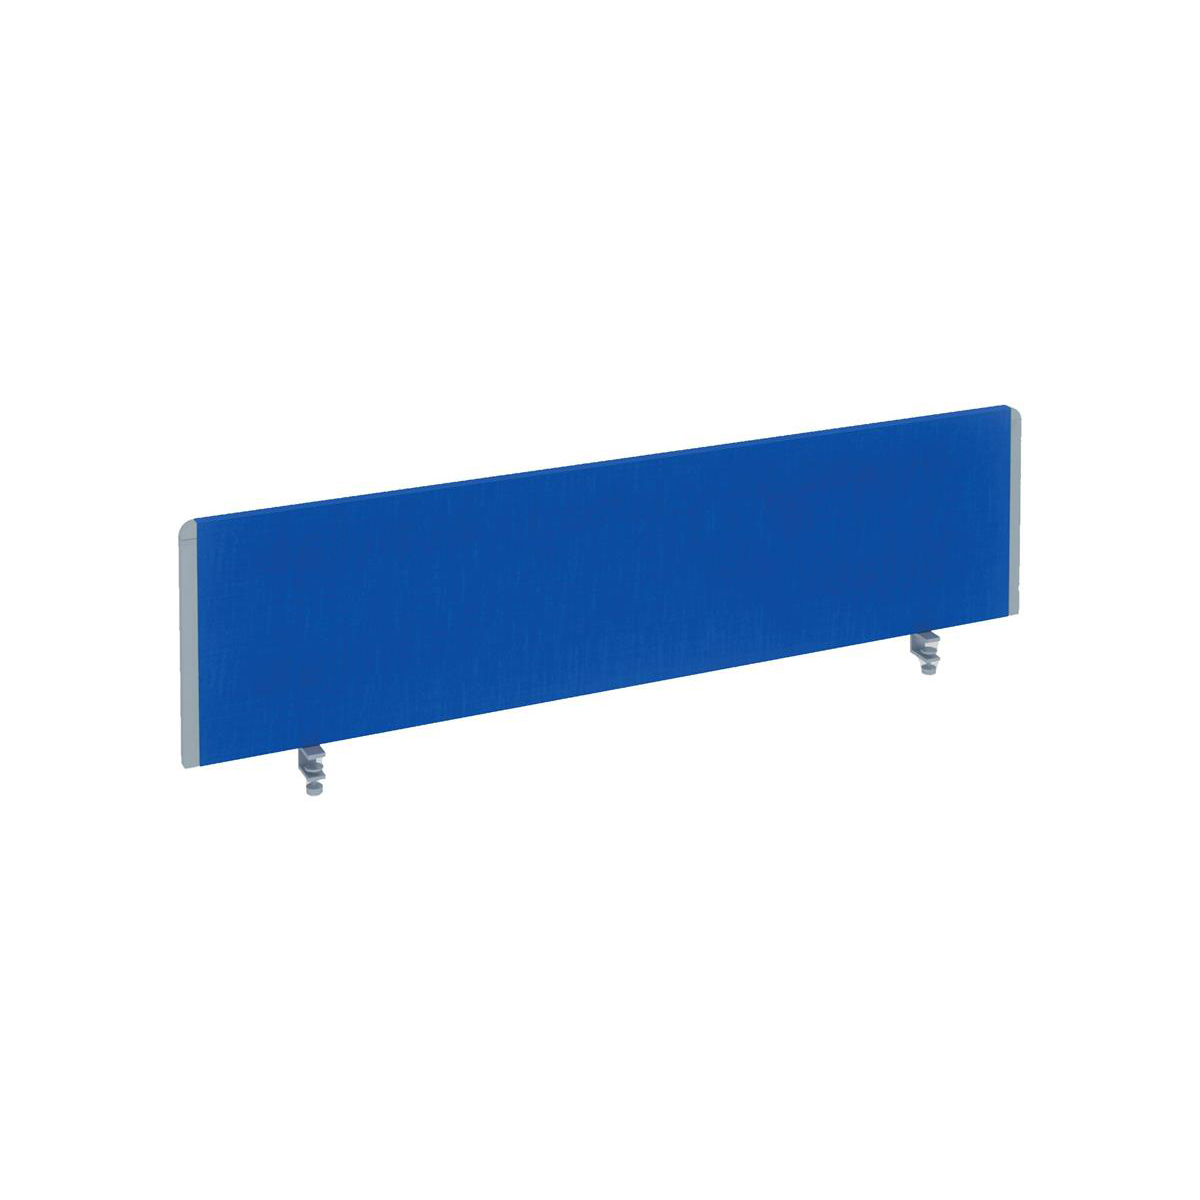 Trexus 1600mm x 300mm Rectangular Screen Blue 1600x350mm Ref 671121